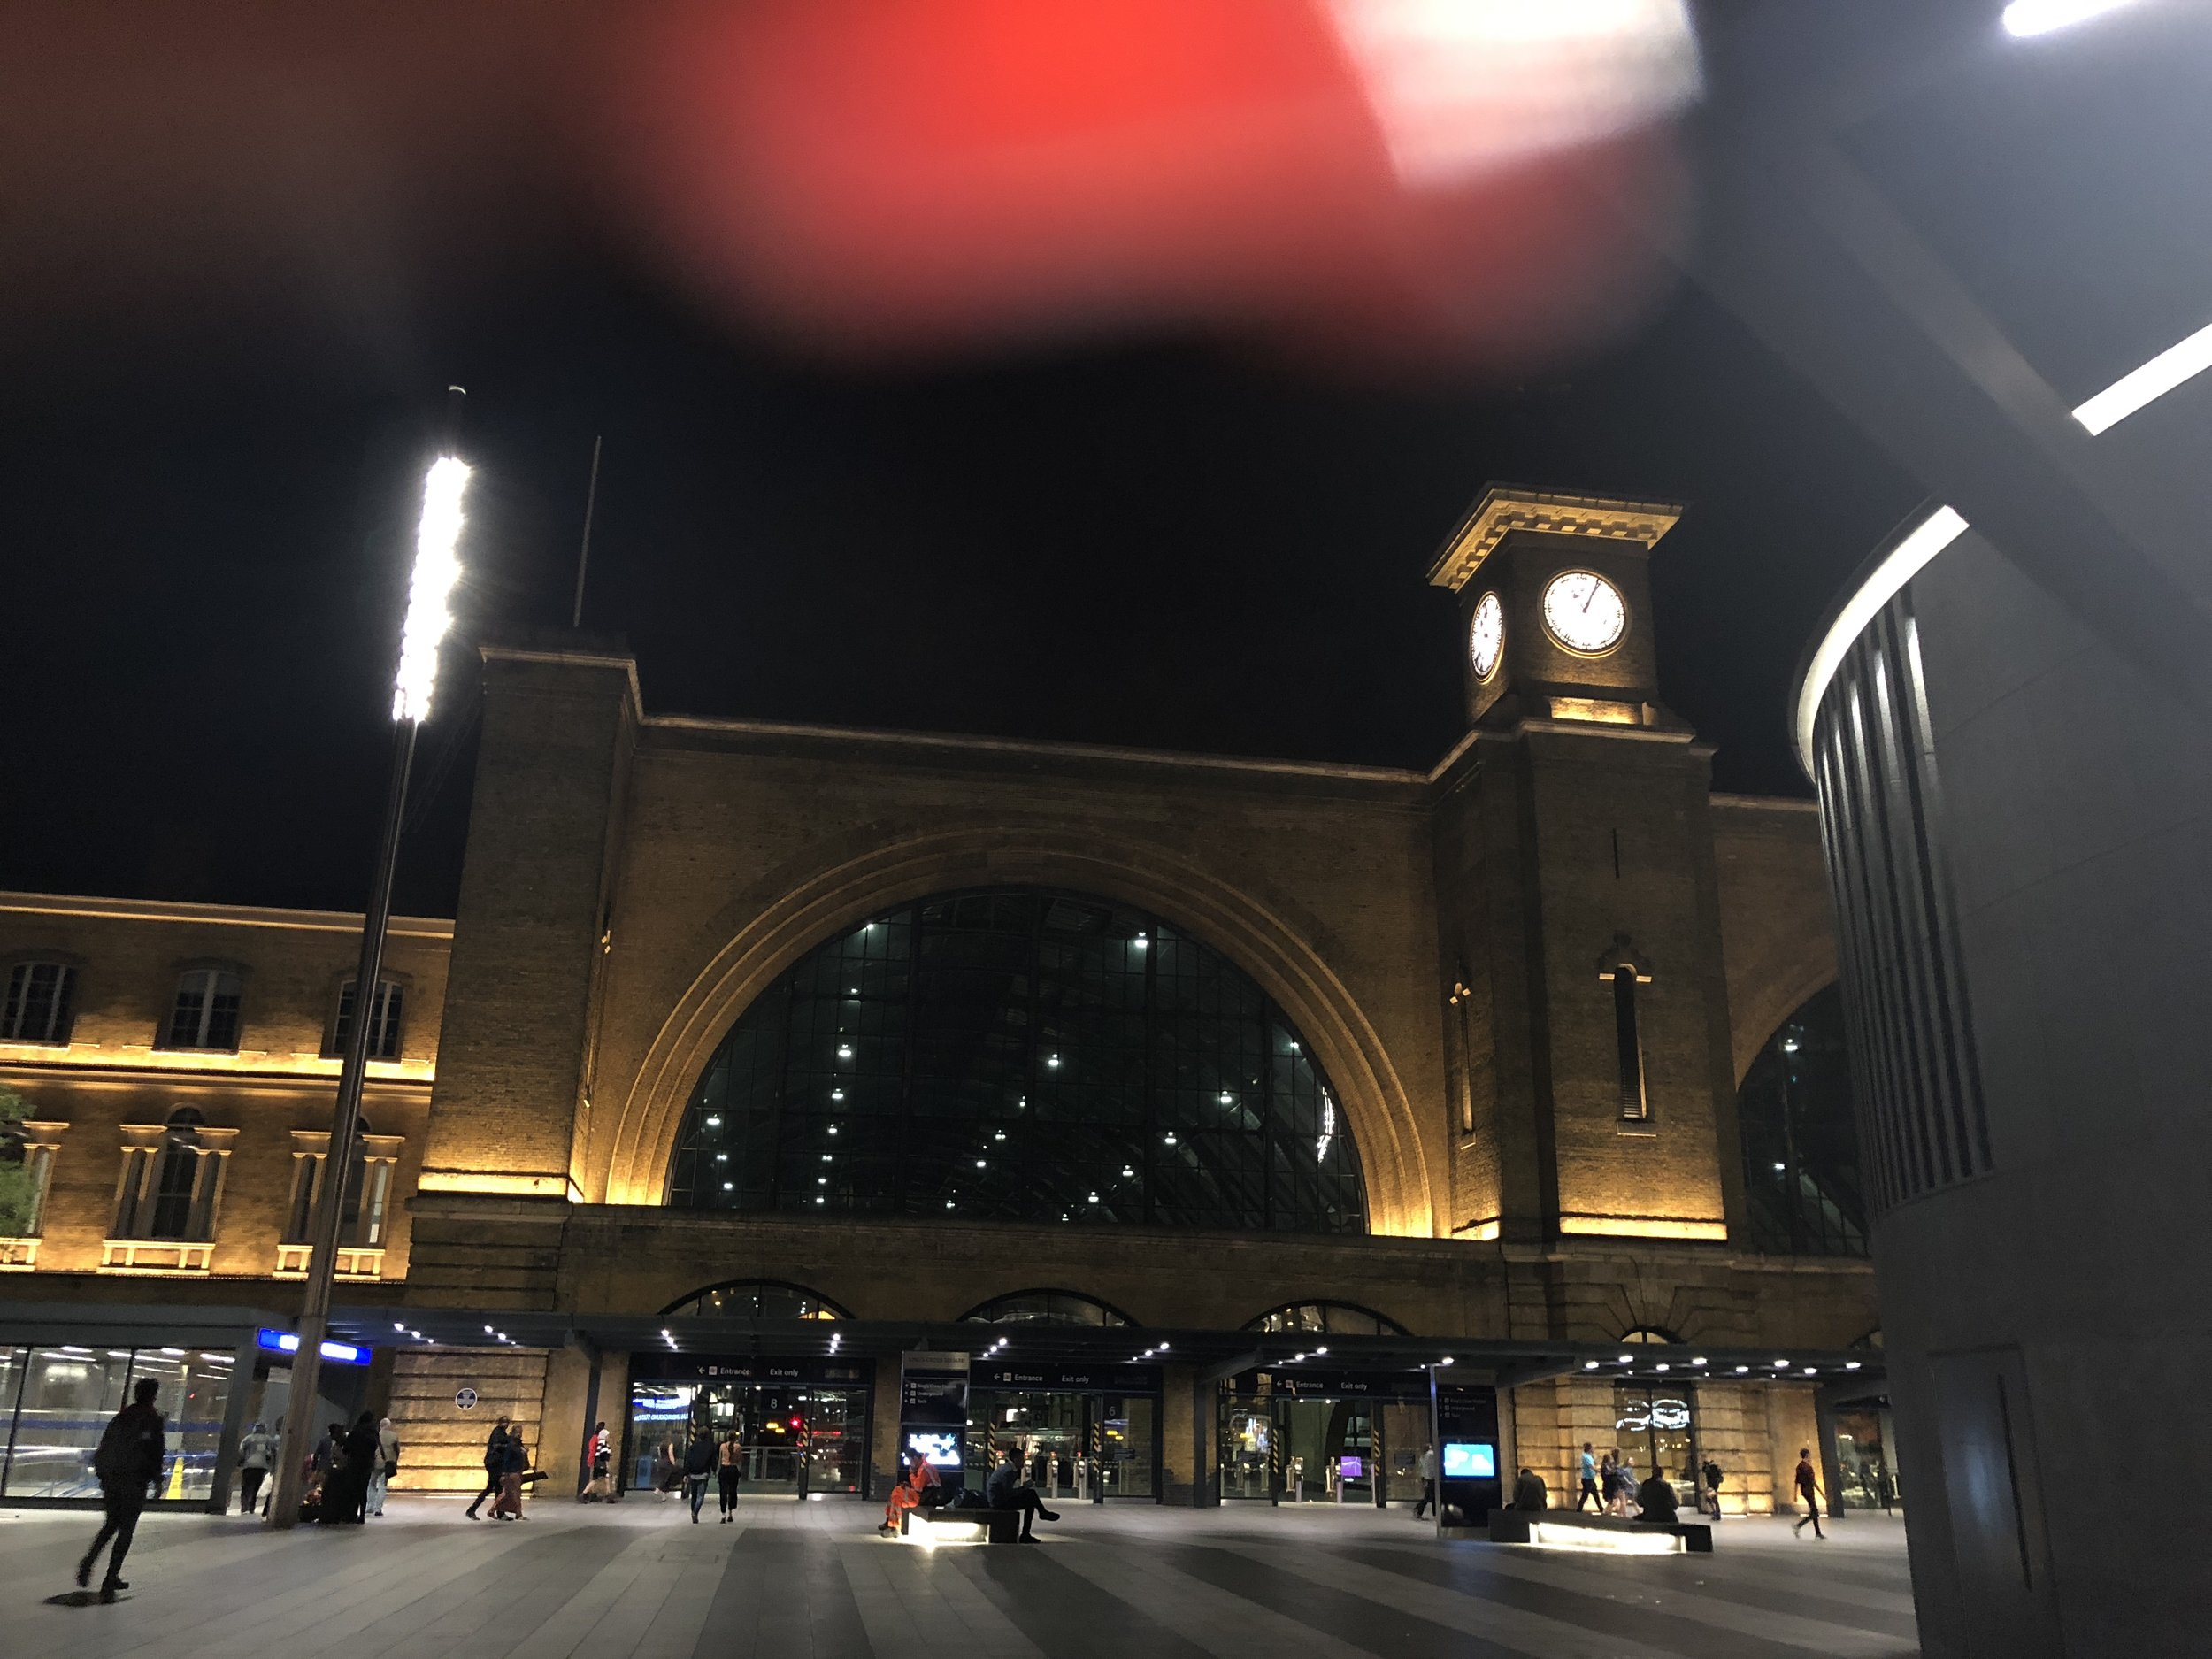 Kings Cross Station: This is one of the central train stations in London. The Eurostar train that takes you to different countries in Europe is also stationed here.